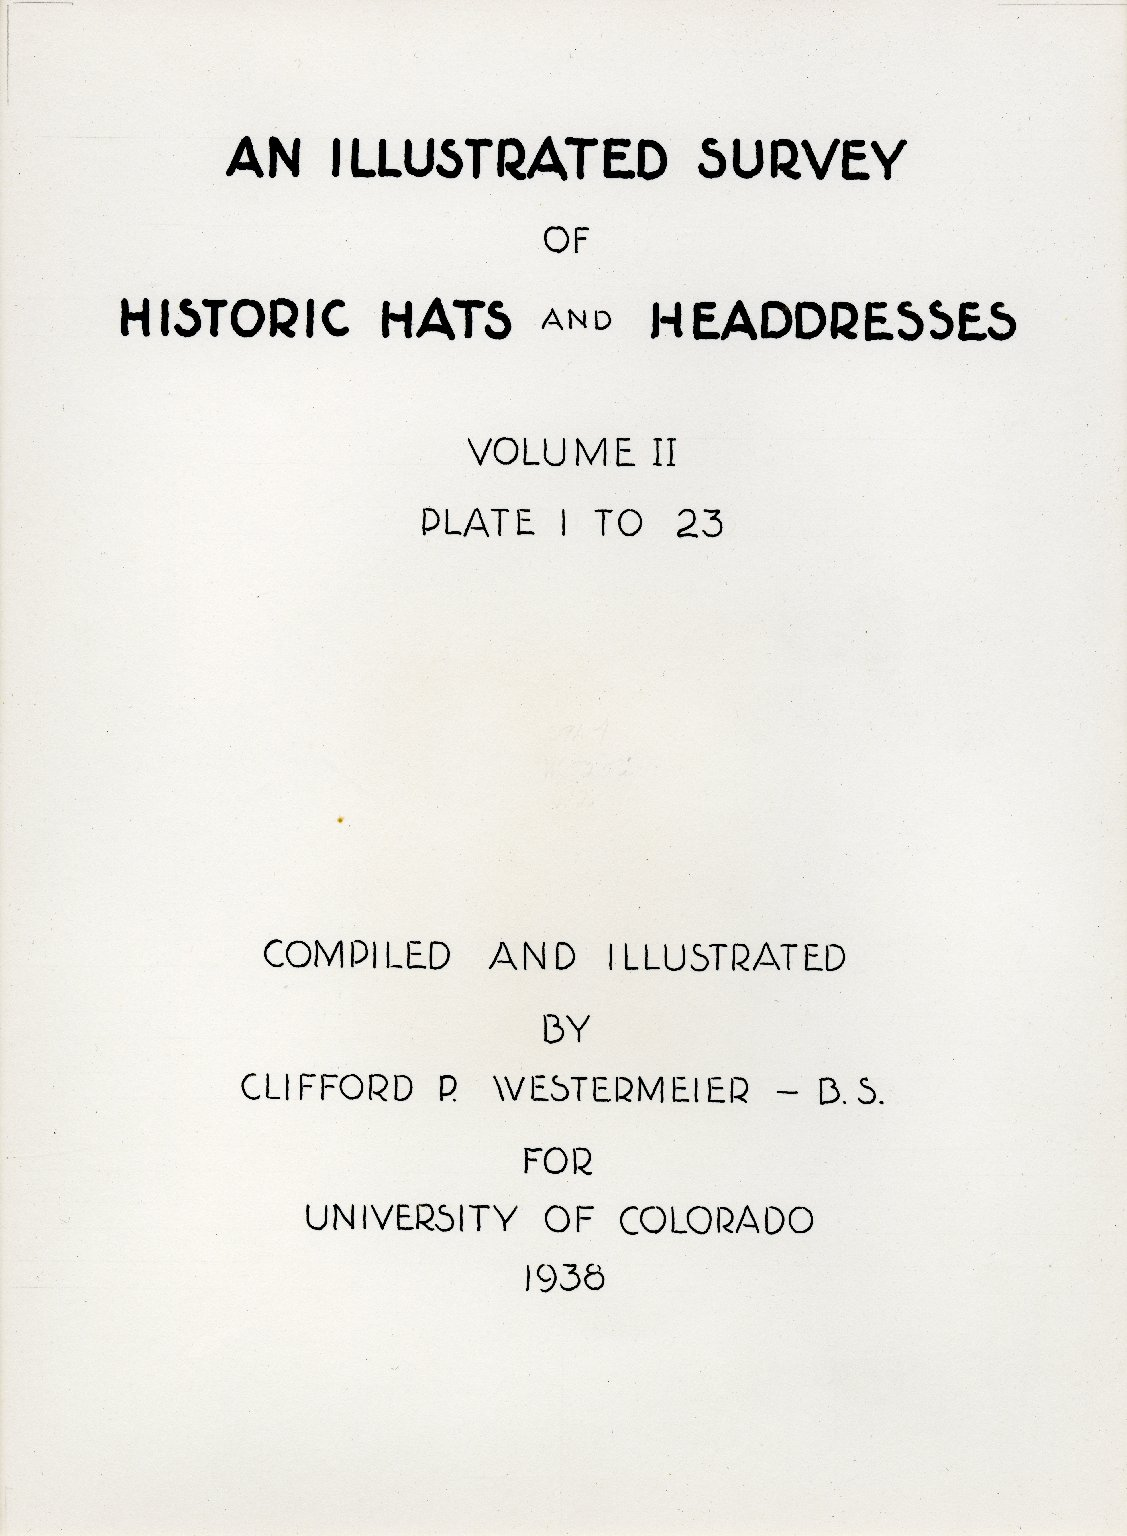 Table of Contents: Volume II Plate 1 to 23